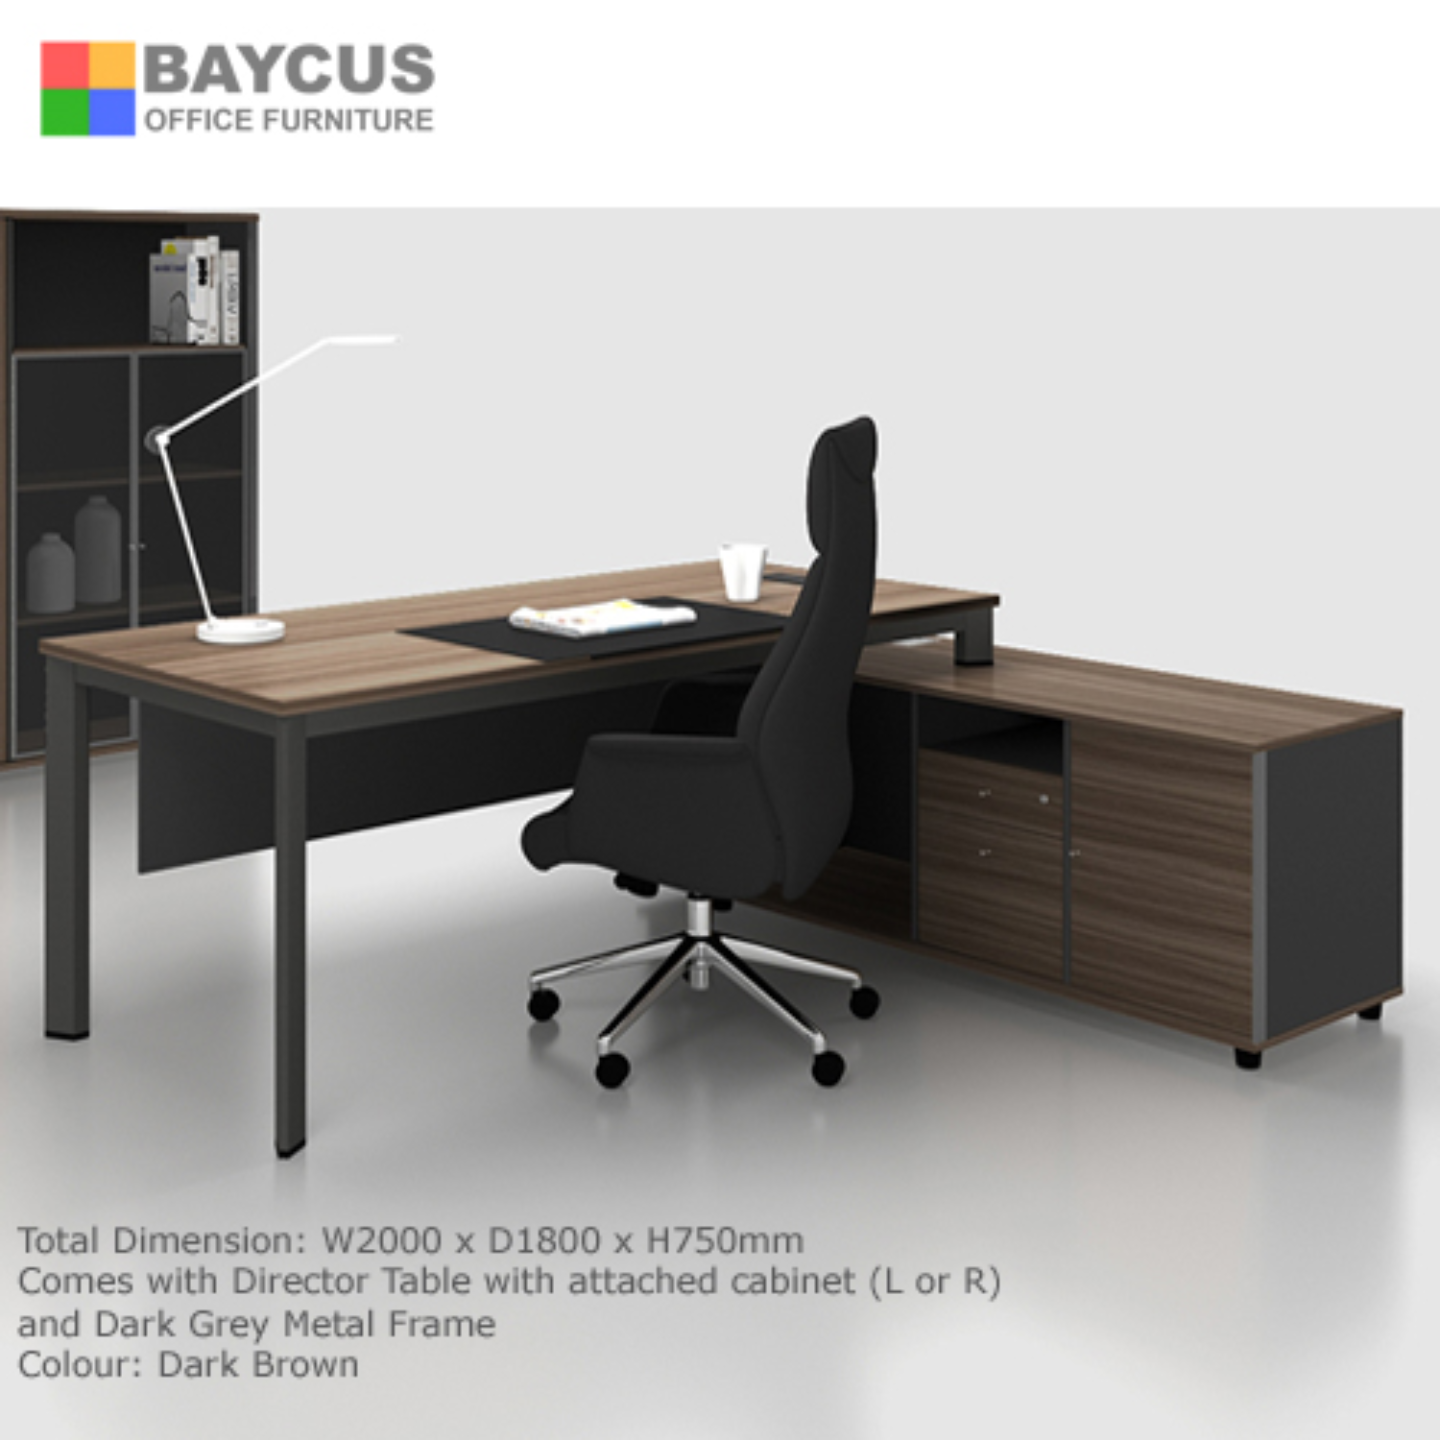 B-One N2 Director Table Set (Col. Dark Brown) - L or R